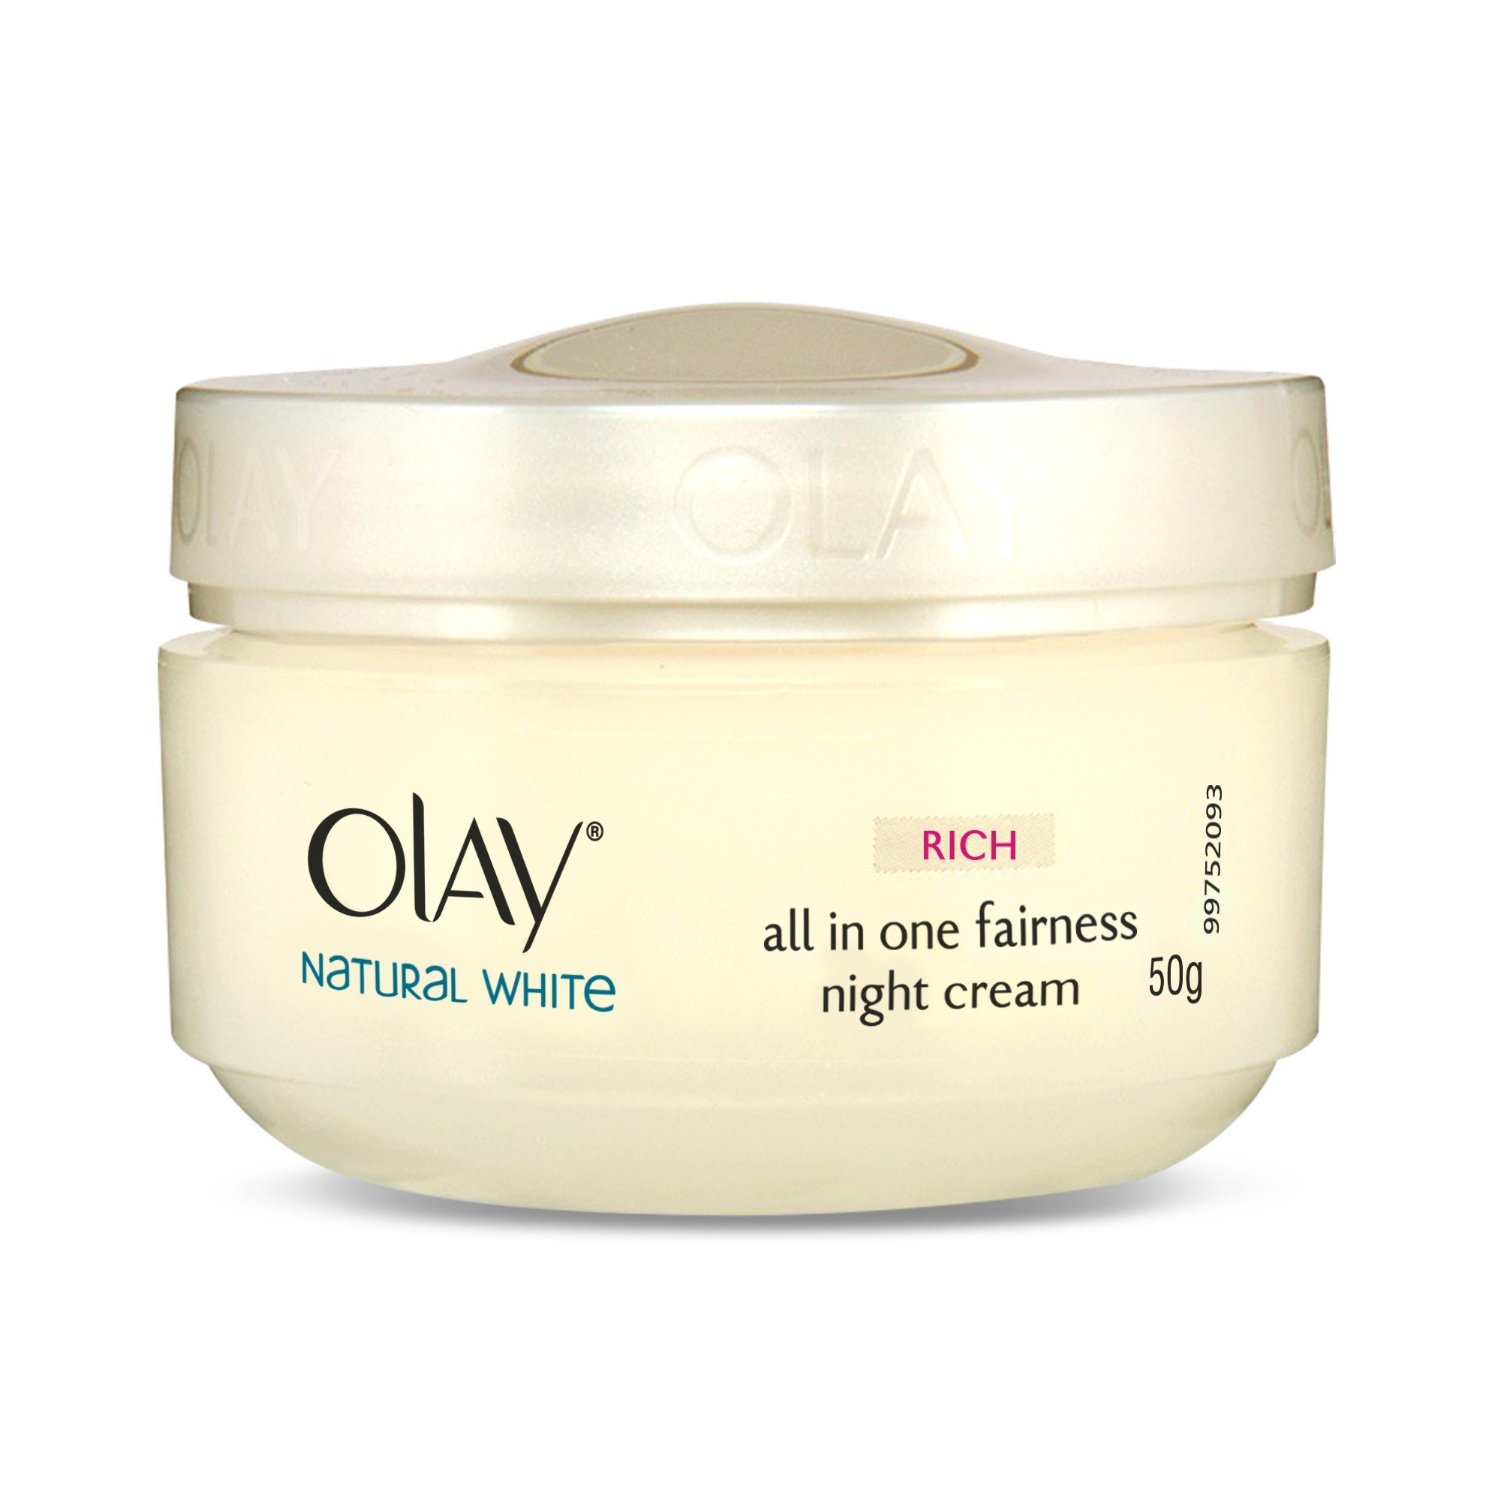 Olay Natural White All-in-One Fairness Night Cream Review